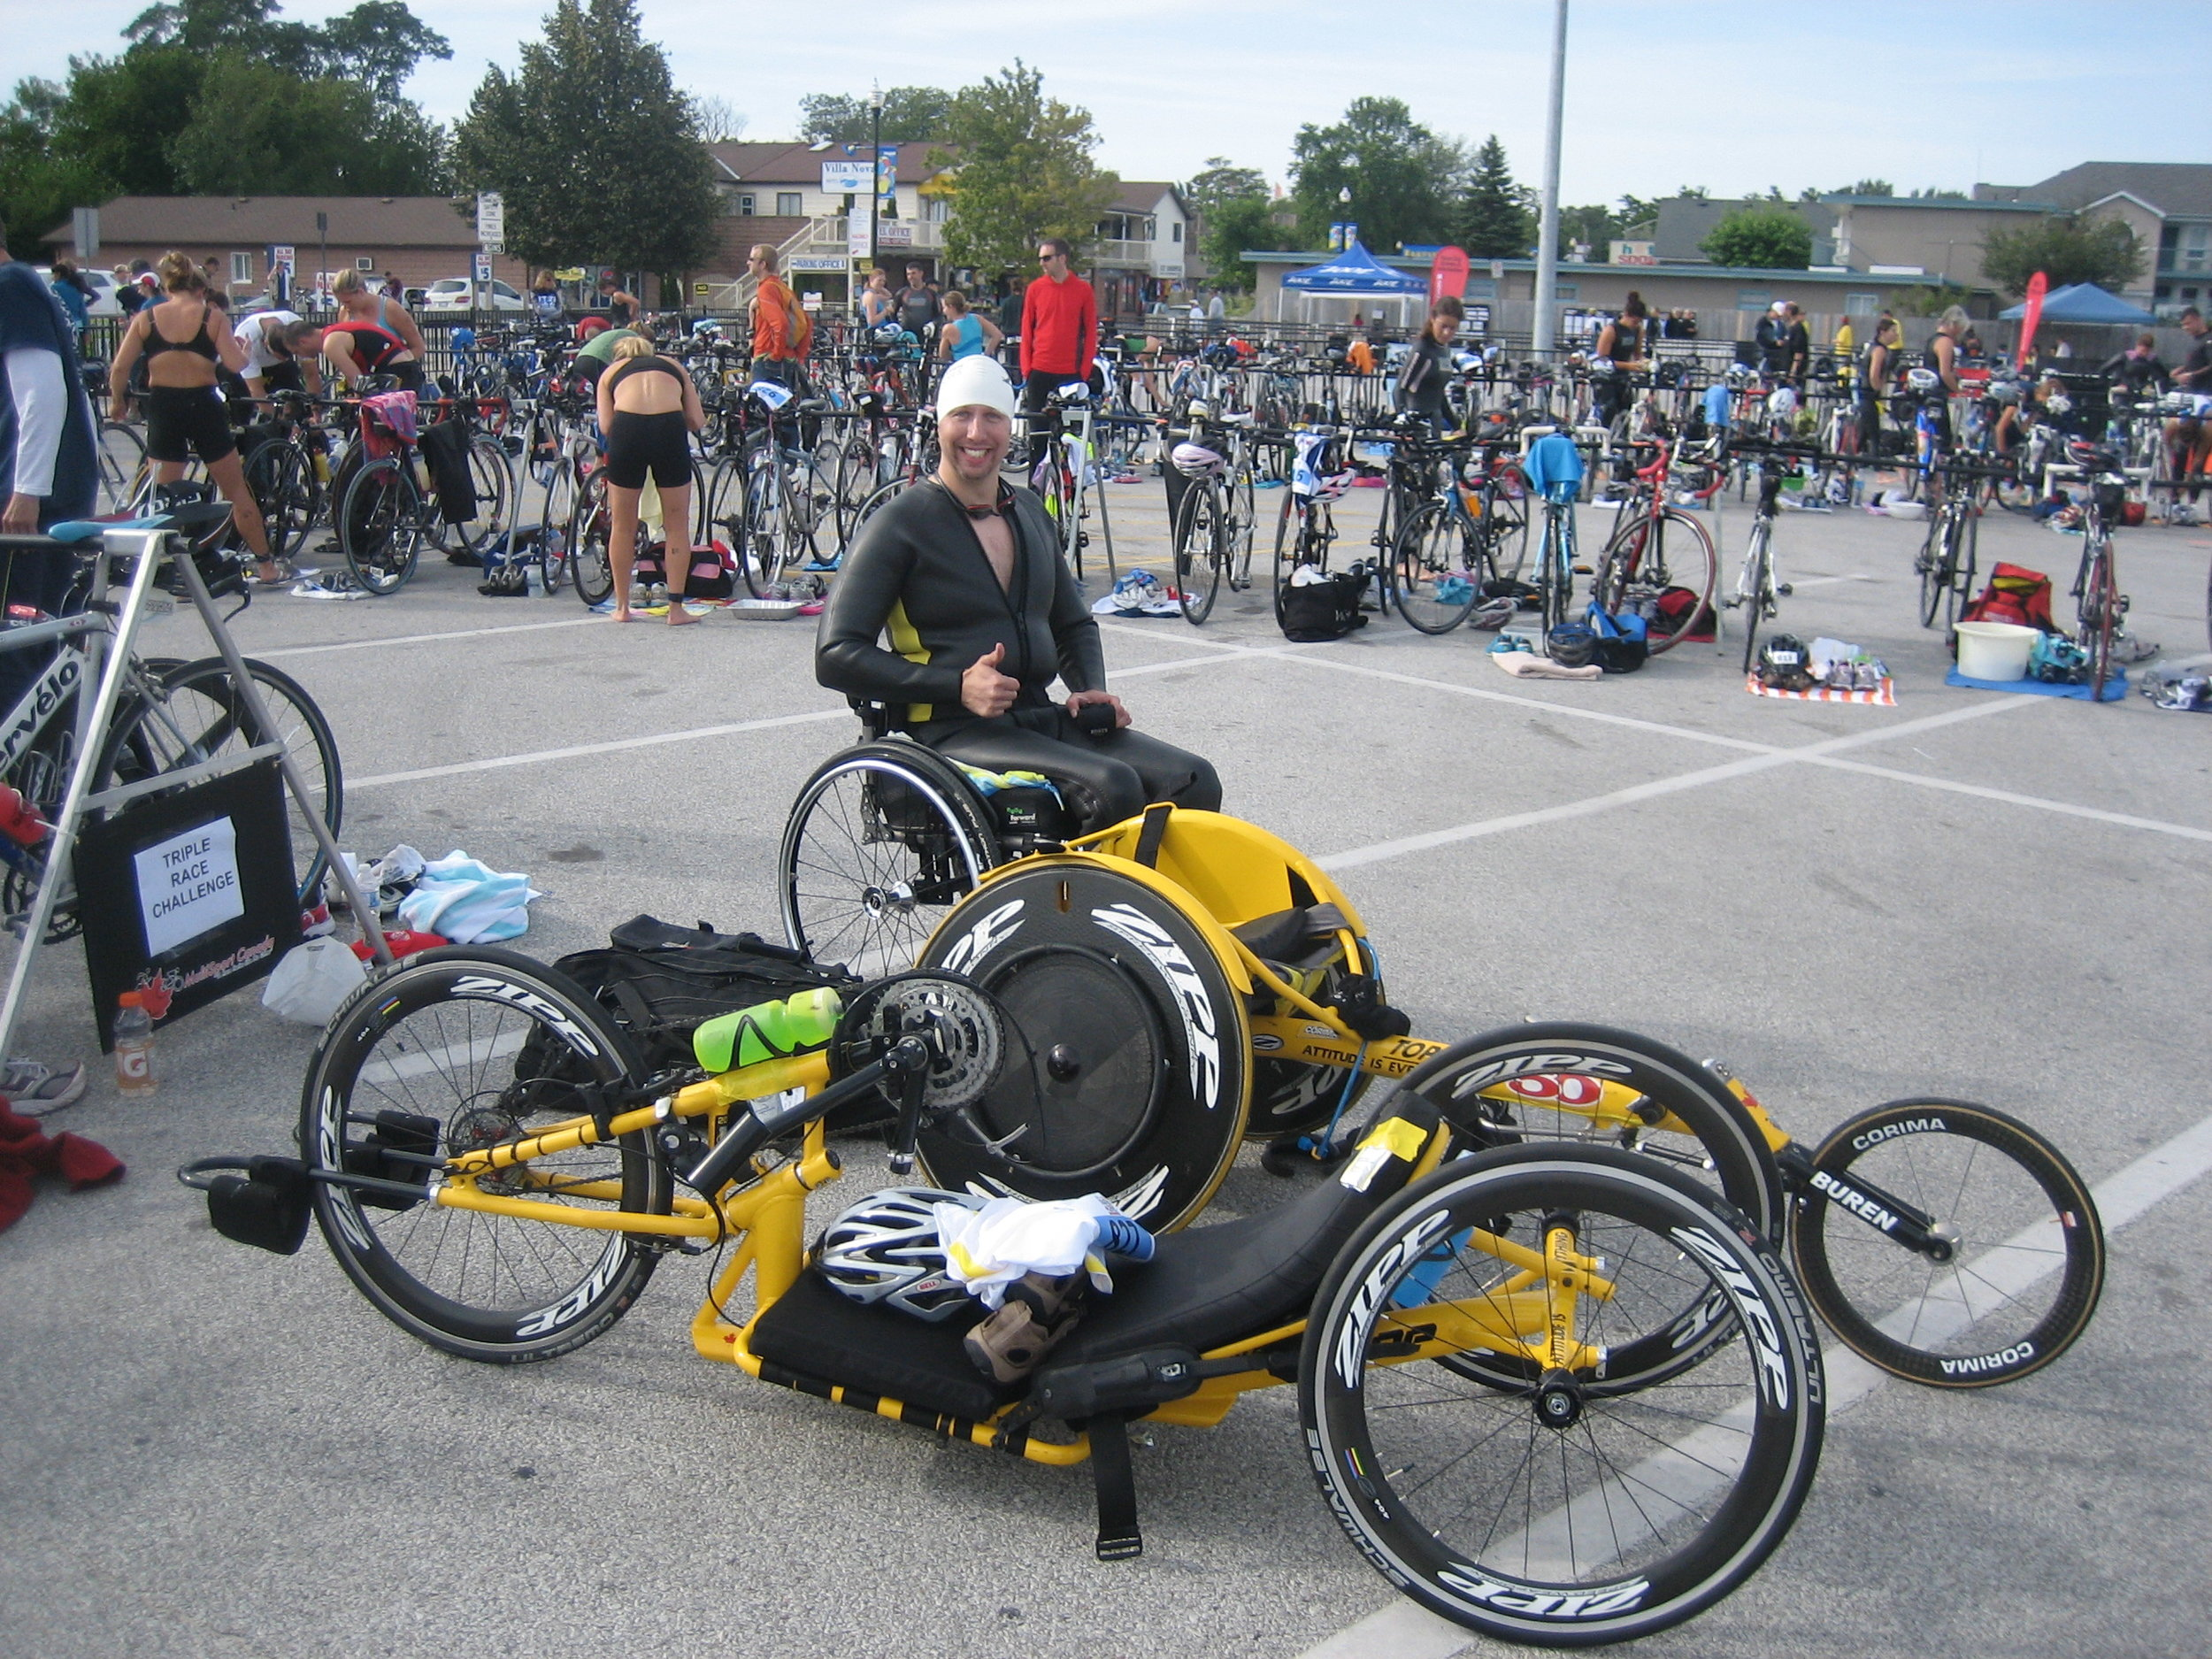 Wasaga Olympic Triathlon, September 2010. My first tri! Not sure if I 'rocked the chair', but I certainly had fun chasing down Peter Carson on the run.